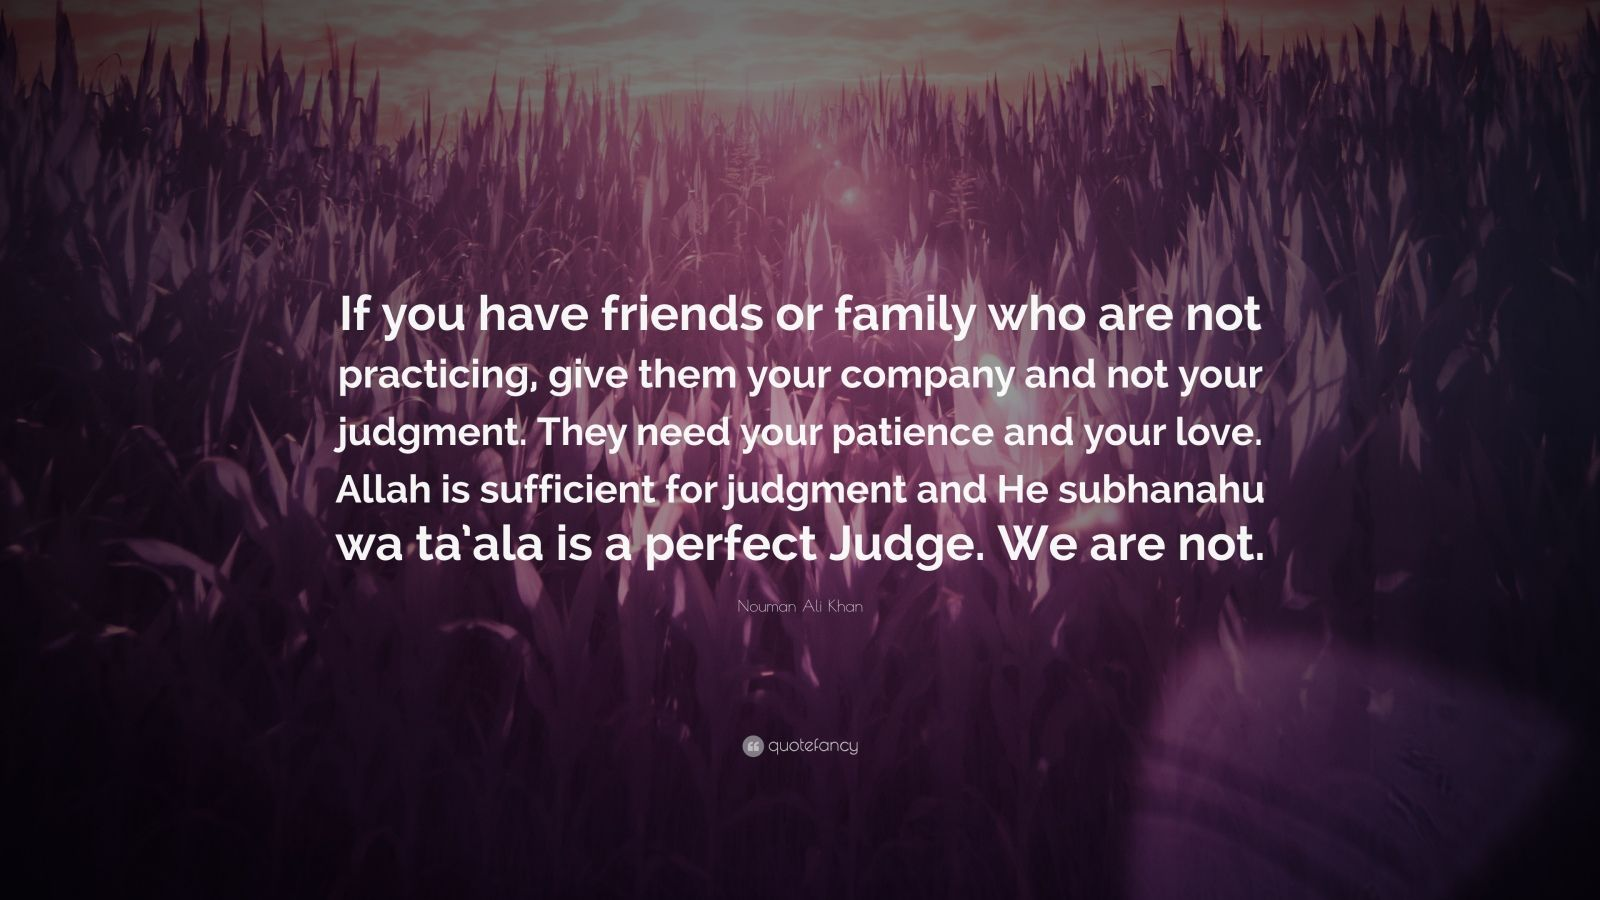 "Nouman Ali Khan Quote: ""If you have friends or family who are not practicing, give them your company and not your judgment. They need your patience and your love. Allah is sufficient for judgment and He subhanahu wa ta'ala is a perfect Judge. We are not."""